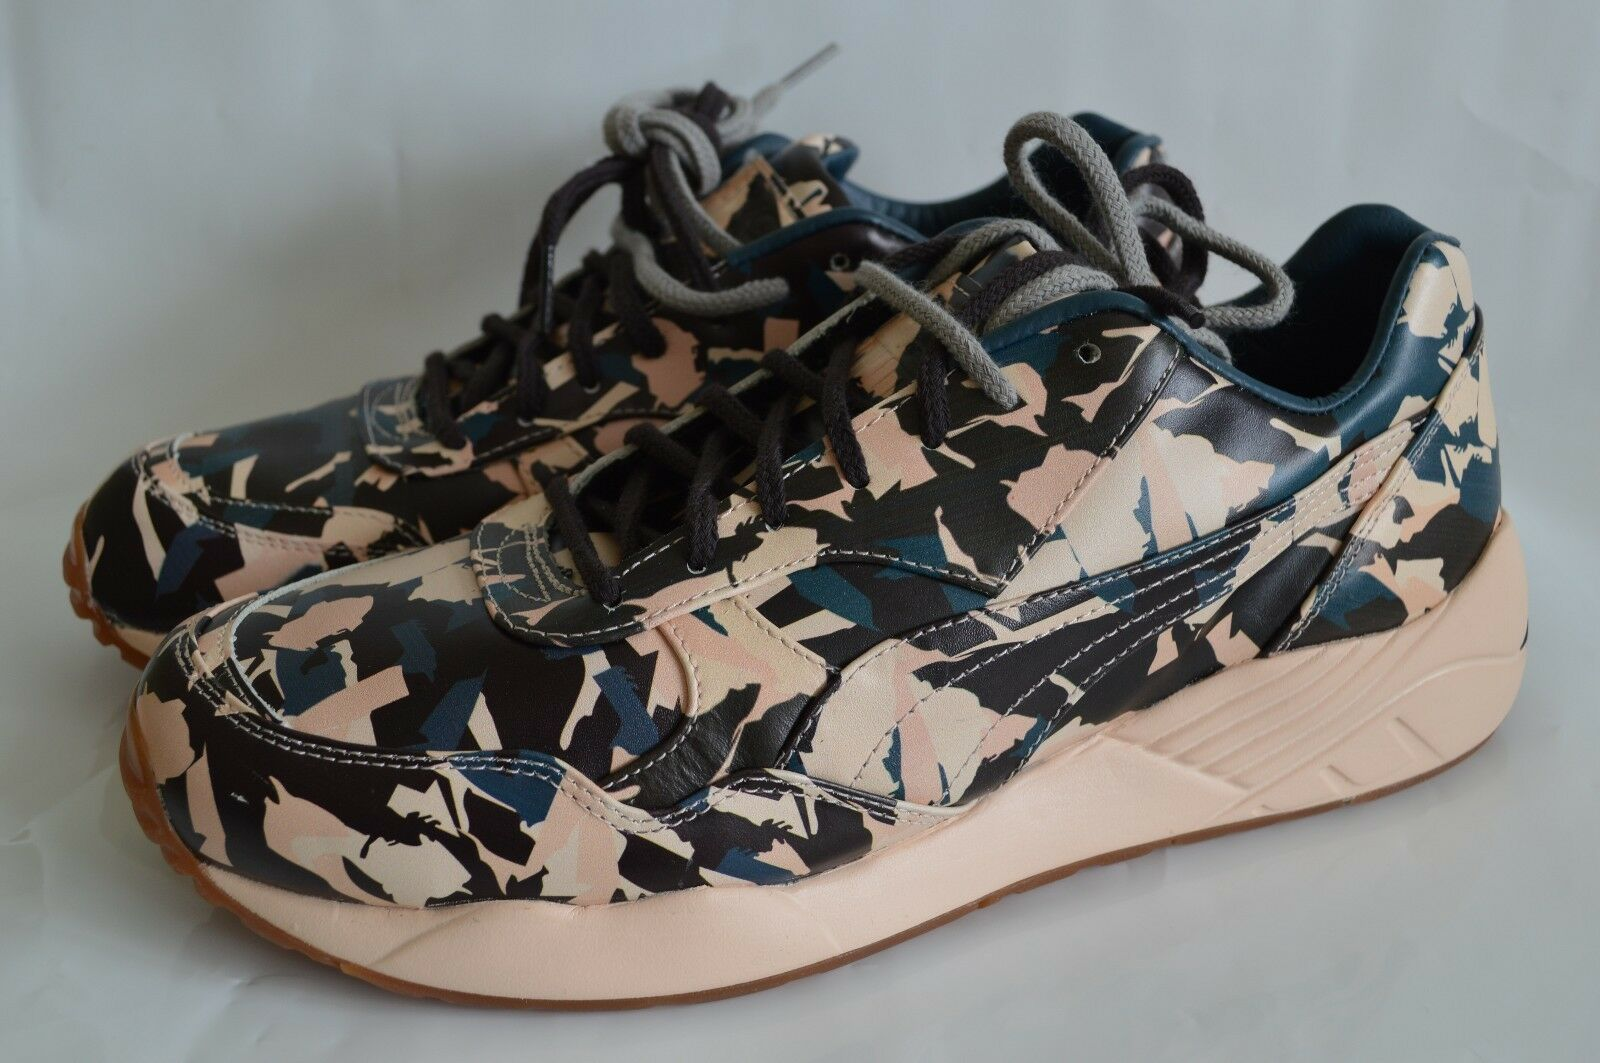 $135 New Mens Puma x BWGH XS-698 Camo Leather Fashion Sneaker Size 9 10 11 12